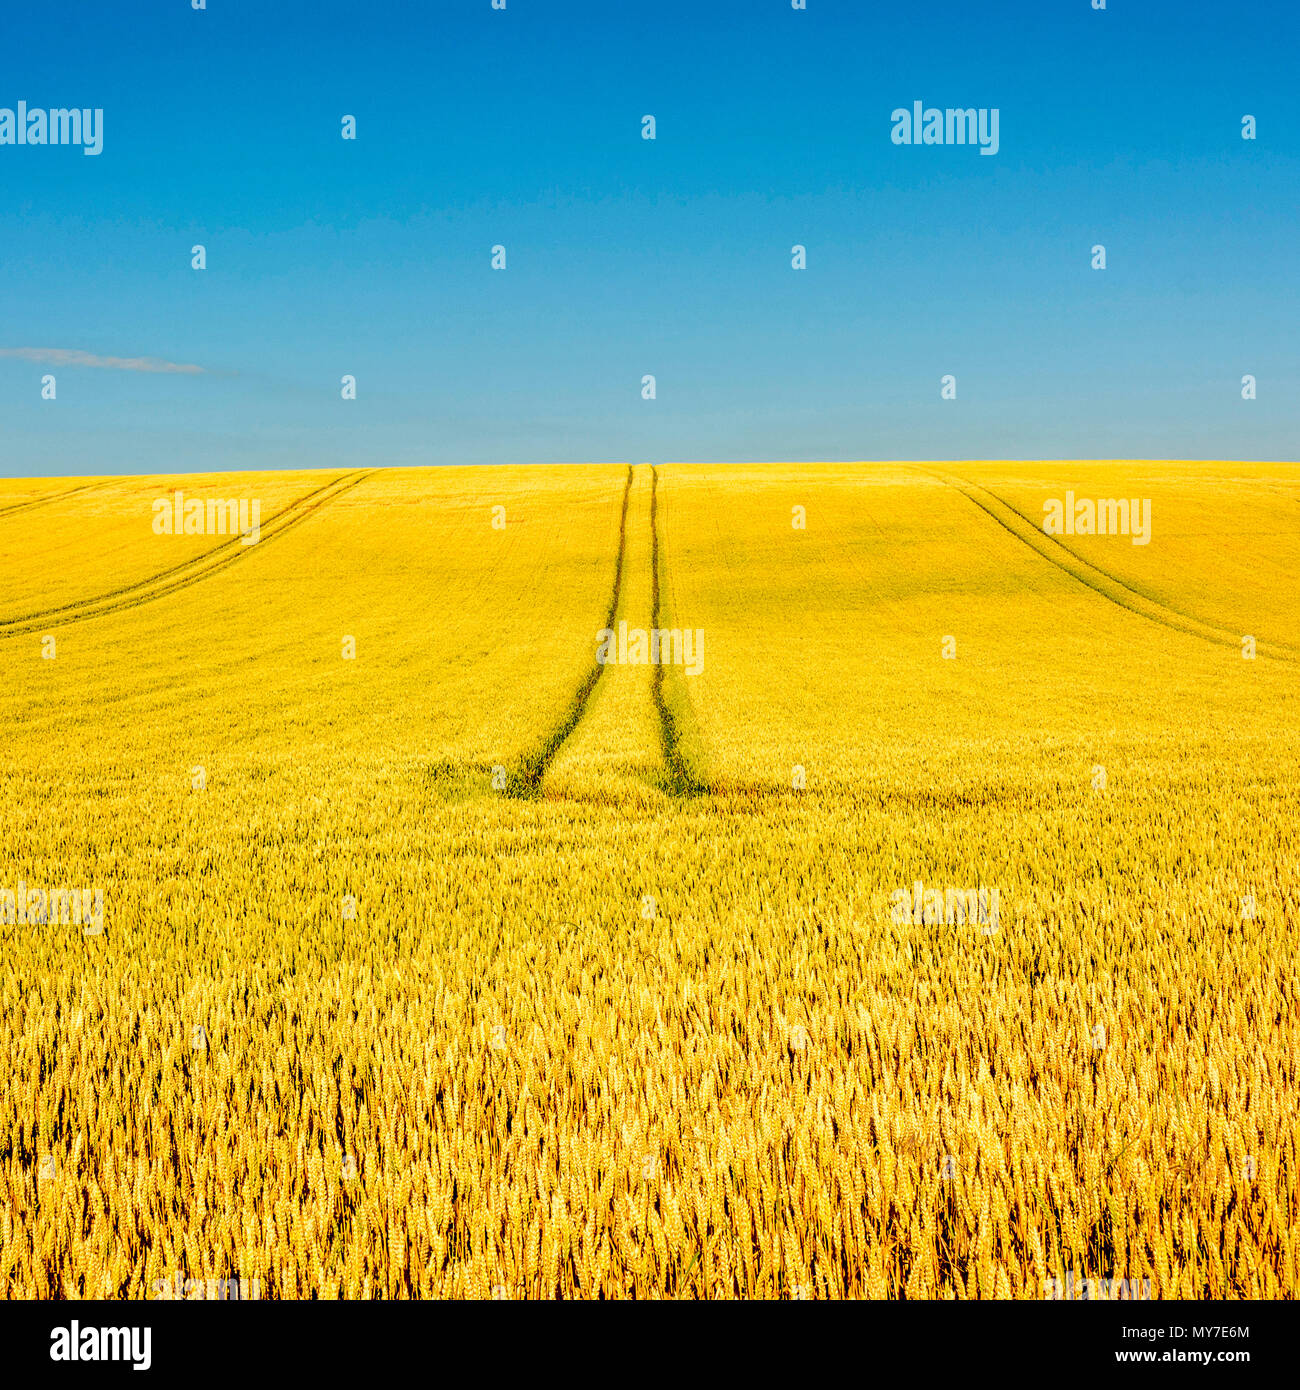 Tire tracks in the middle of a field of corn, Puy de Dome department, Auvergne Rhone Alpes, France - Stock Image